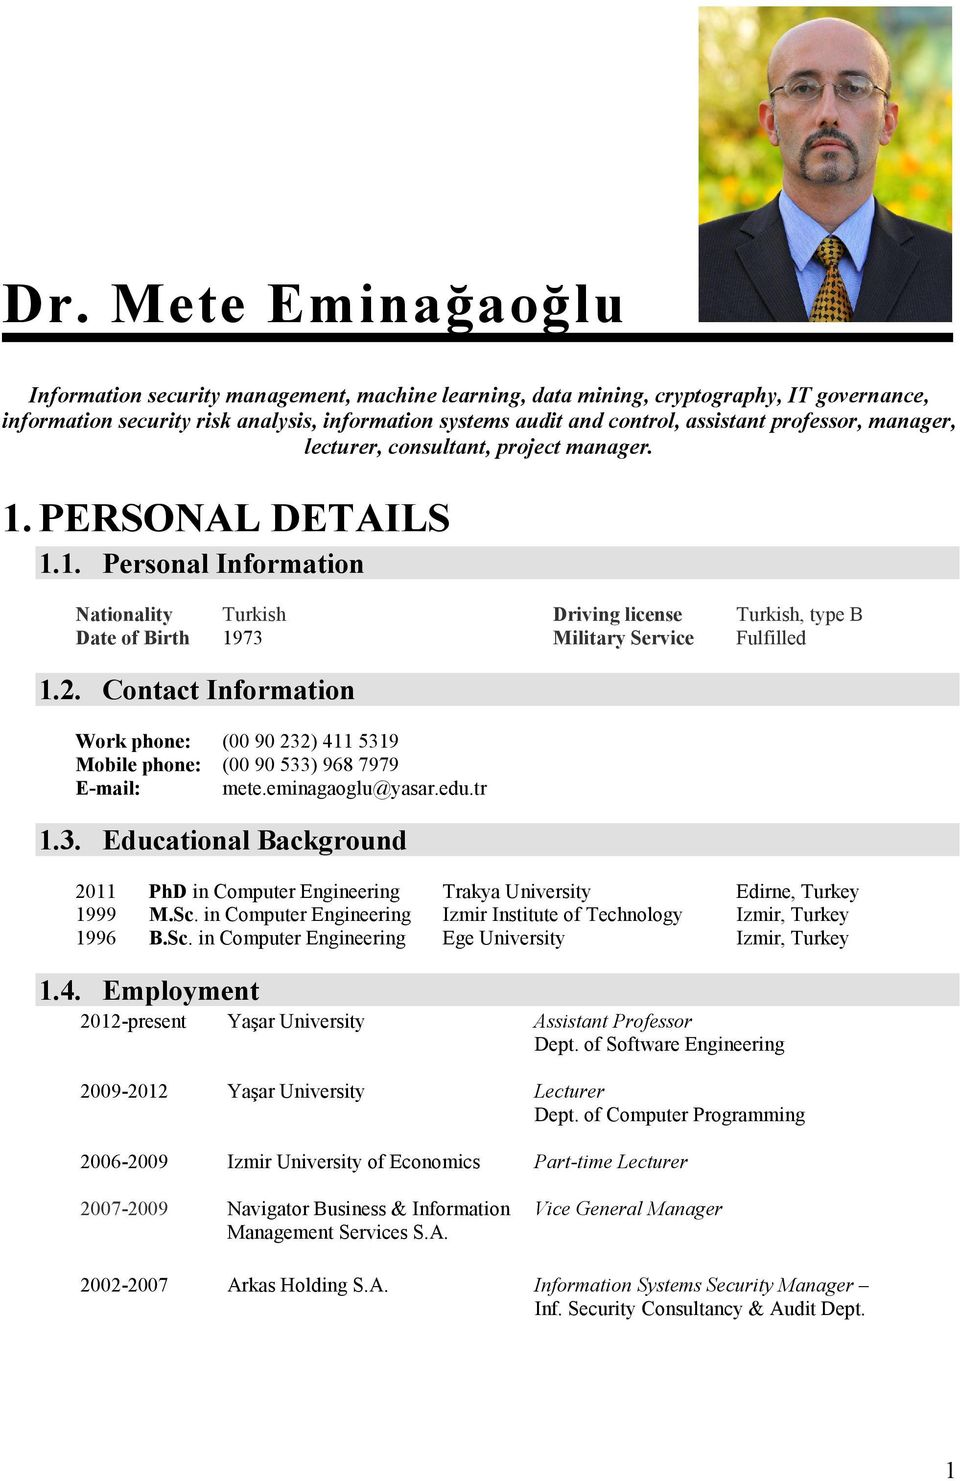 2. Contact Information Work phone: (0090232) 4115319 Mobile phone: (0090533) 9687979 E-mail: mete.eminagaoglu@yasar.edu.tr 1.3. Educational Background 2011 PhD in Computer Engineering Trakya University Edirne, Turkey 1999 M.